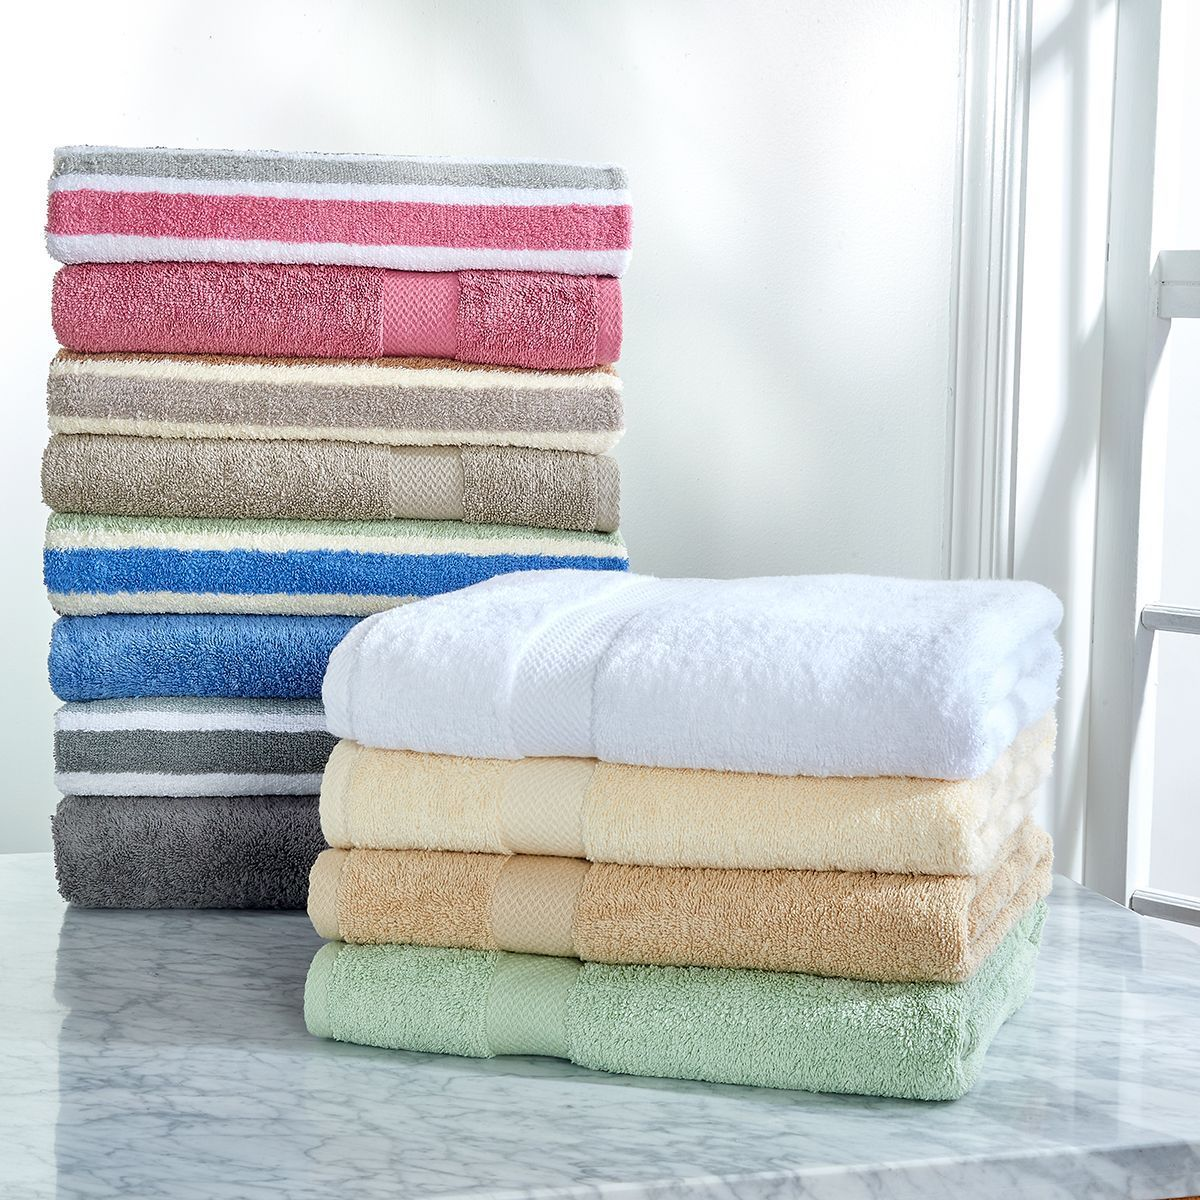 #shop #business #shopping #maternity #headphones #indiedev #gamedev #win #deals #sale #shopsmall #spring #summer #home #giftideas #kitchen #hair #electronics GREAT WEB DEALS @ BOSCOV'S Super Soft Towel Collection http://bit.ly/2l8LlH1